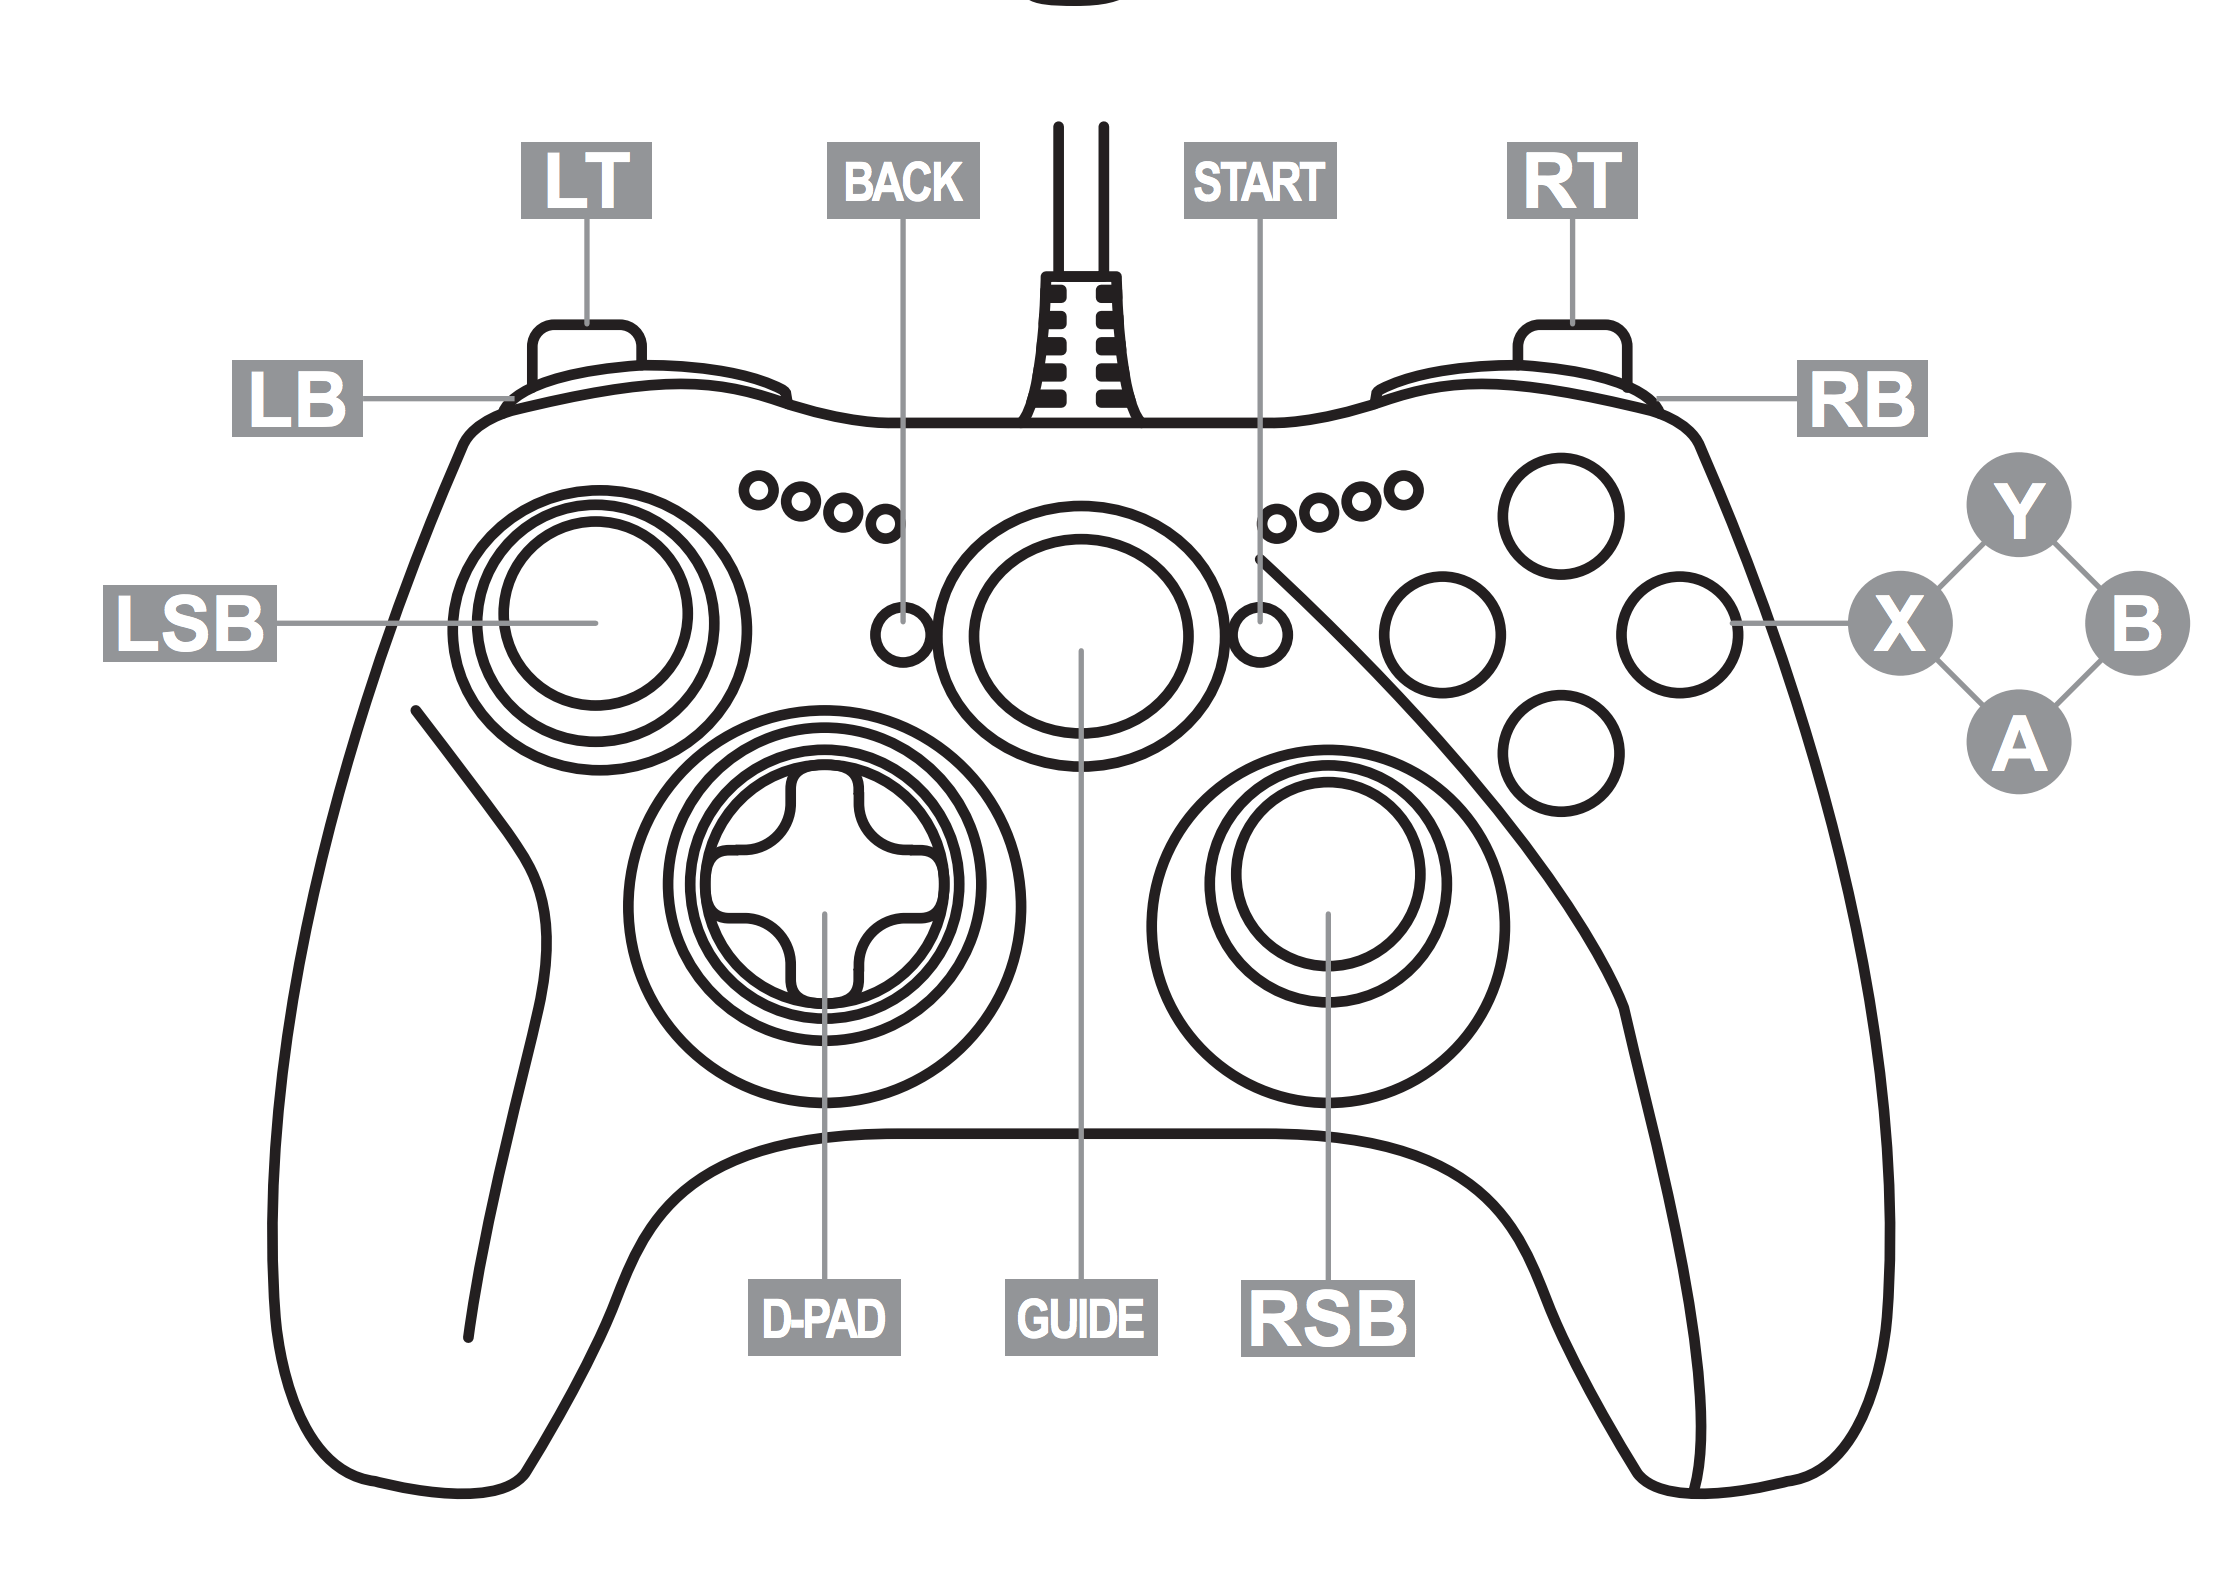 Xbox Remote Control Drawing